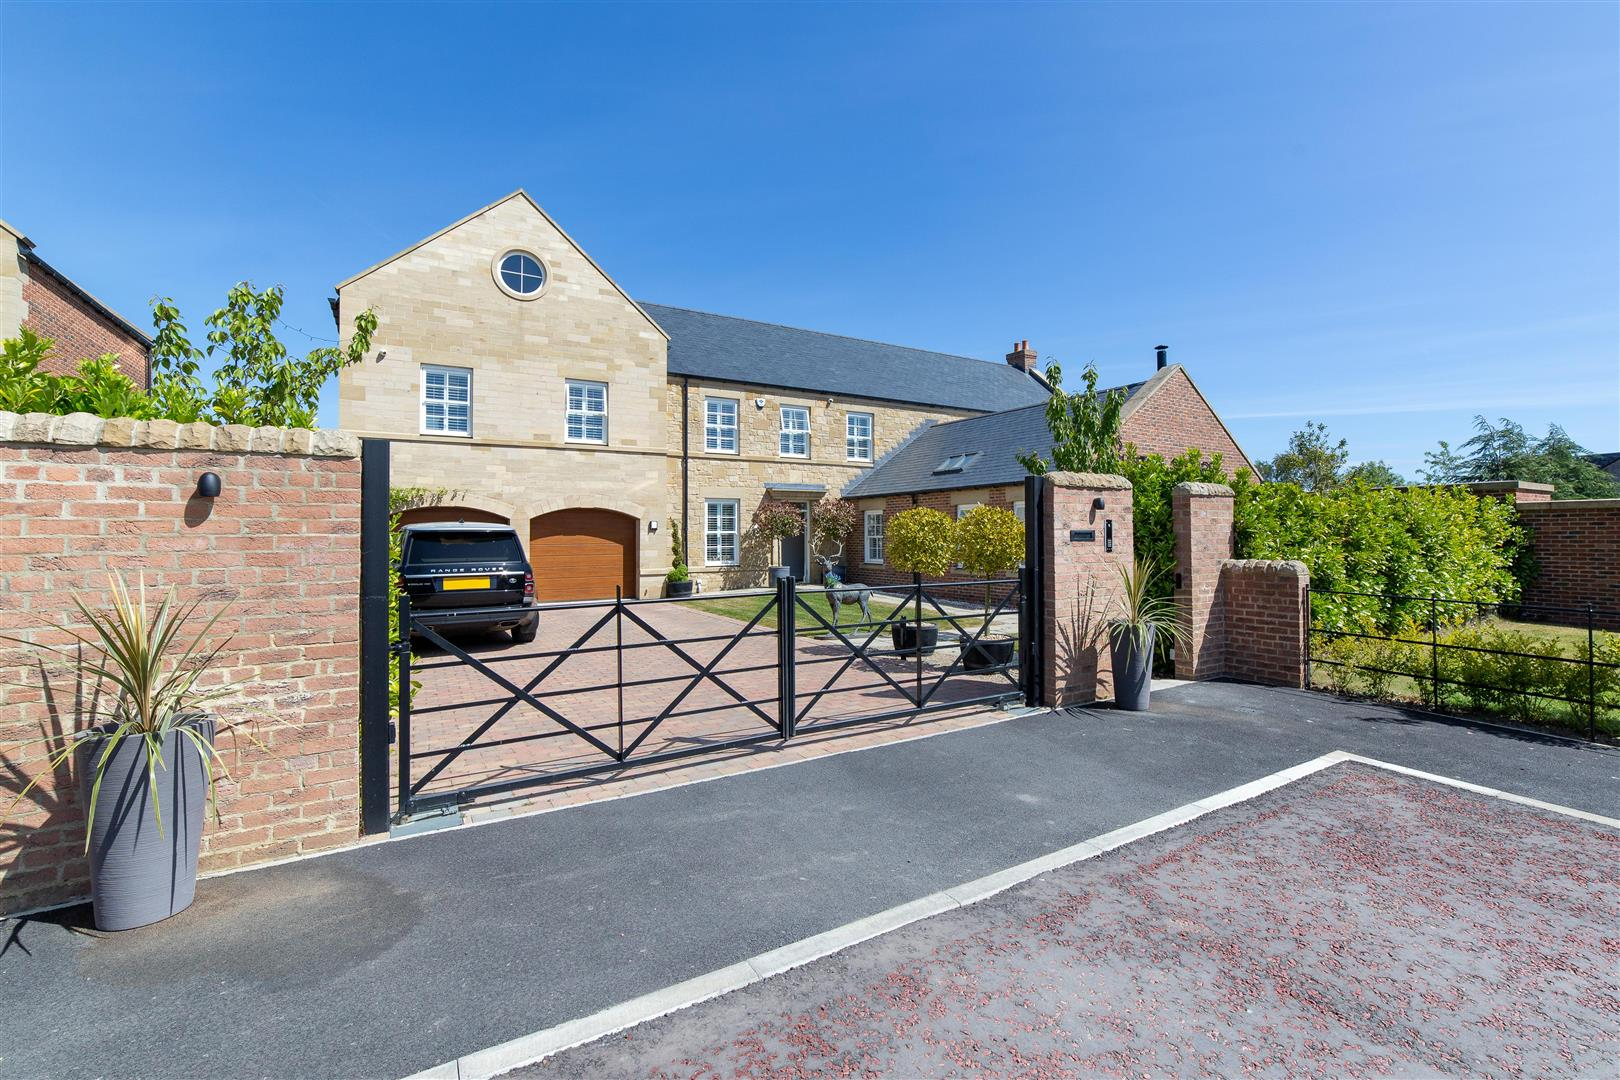 4 bed detached house for sale in Great Park, NE13 9NW - Property Image 1